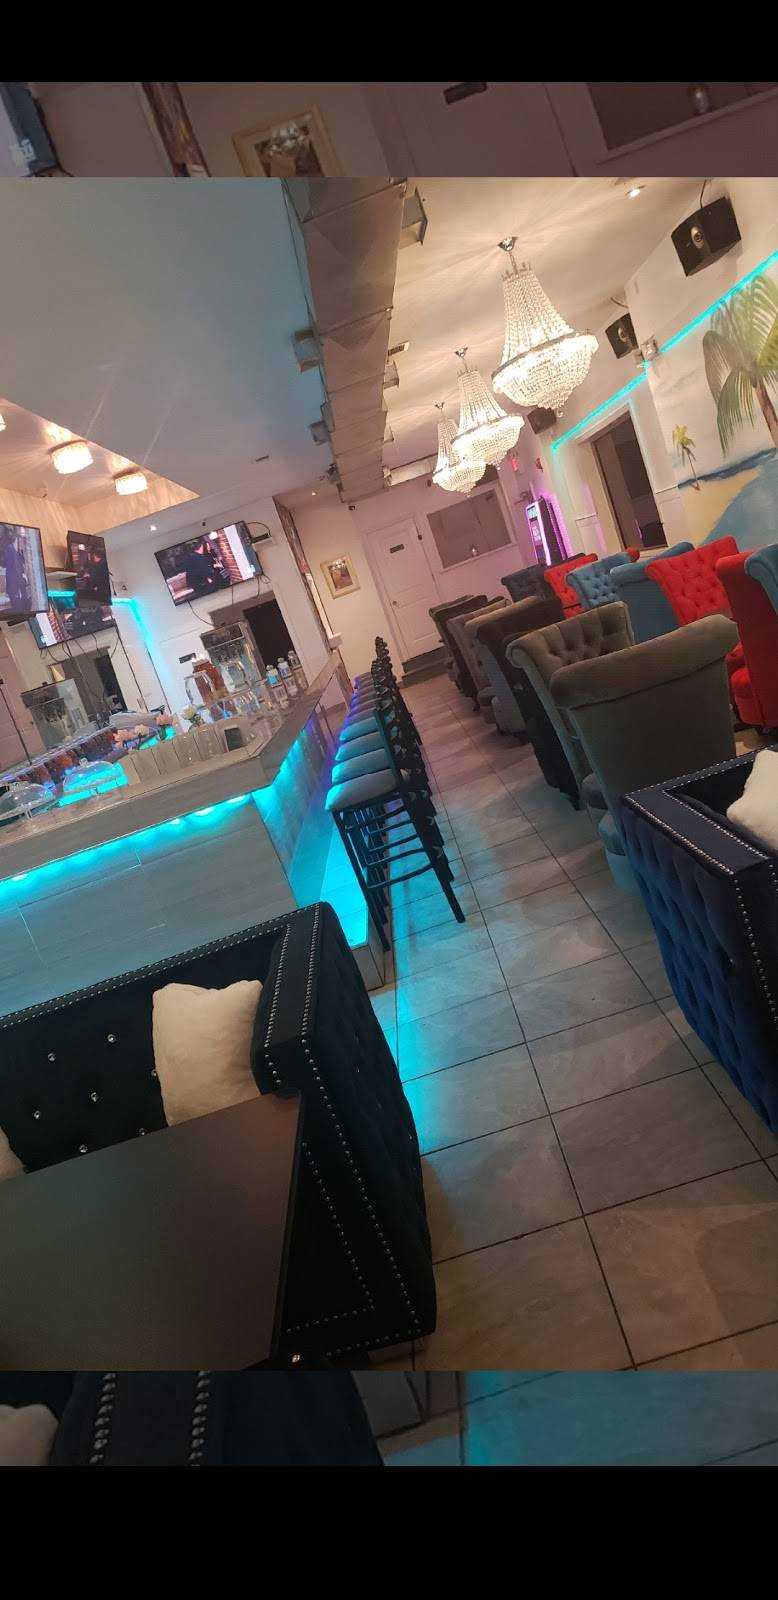 Peppers hookah Lounge & GENTLEMENS CLUB | restaurant | 2643 W Sergeant St, Philadelphia, PA 19132, USA | 2674437654 OR +1 267-443-7654